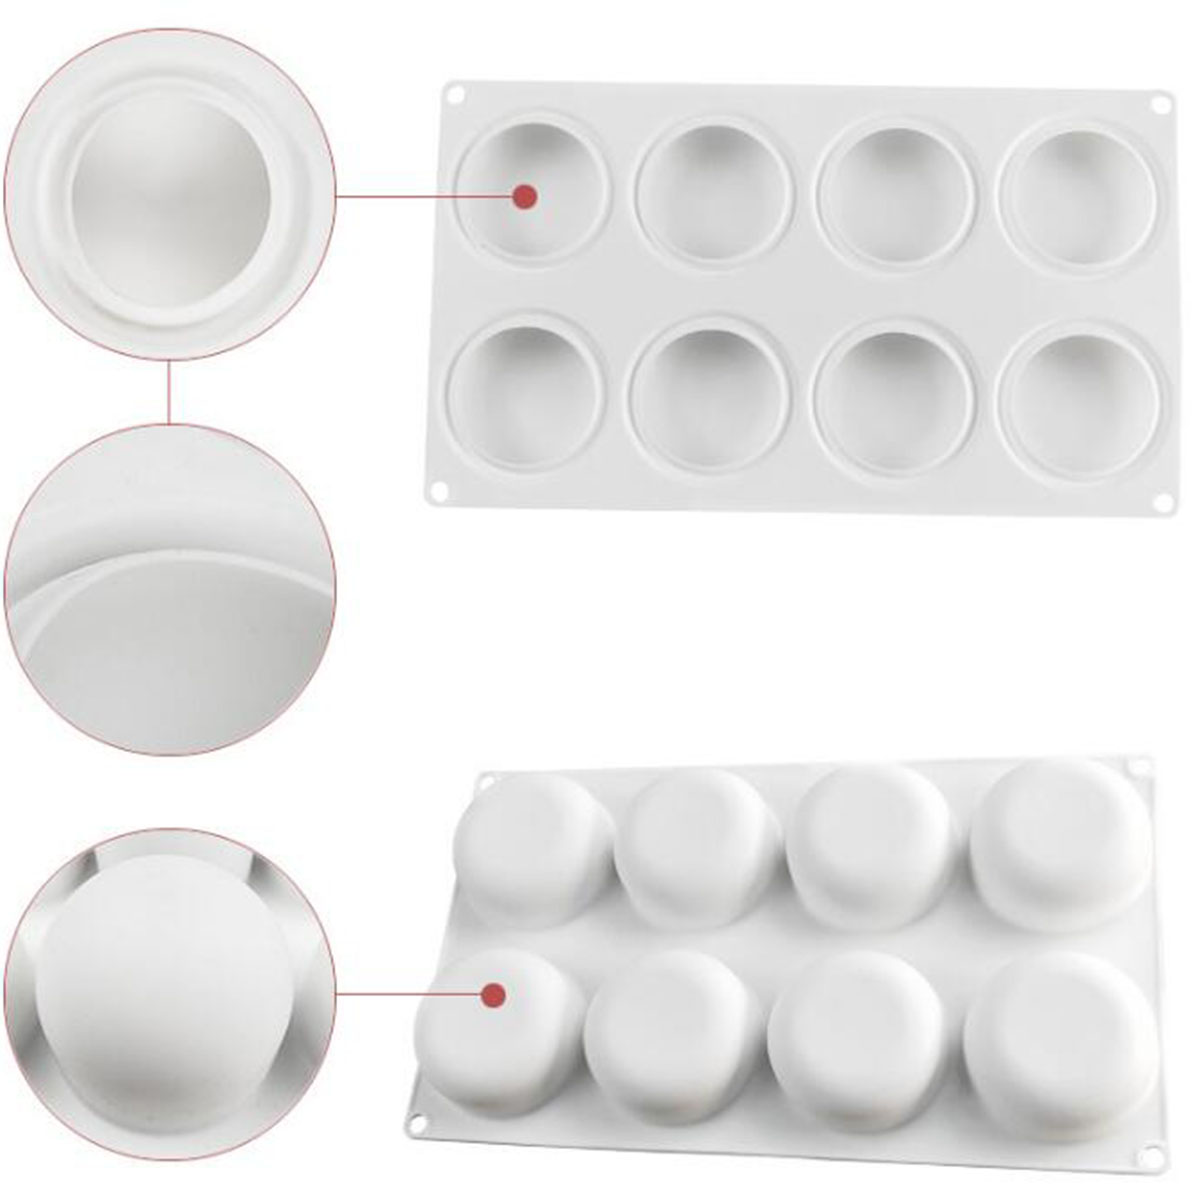 Round Silicone DIY Mousse Cake Mold 8 Cavity Candy Chocolate Baking Mould Tray